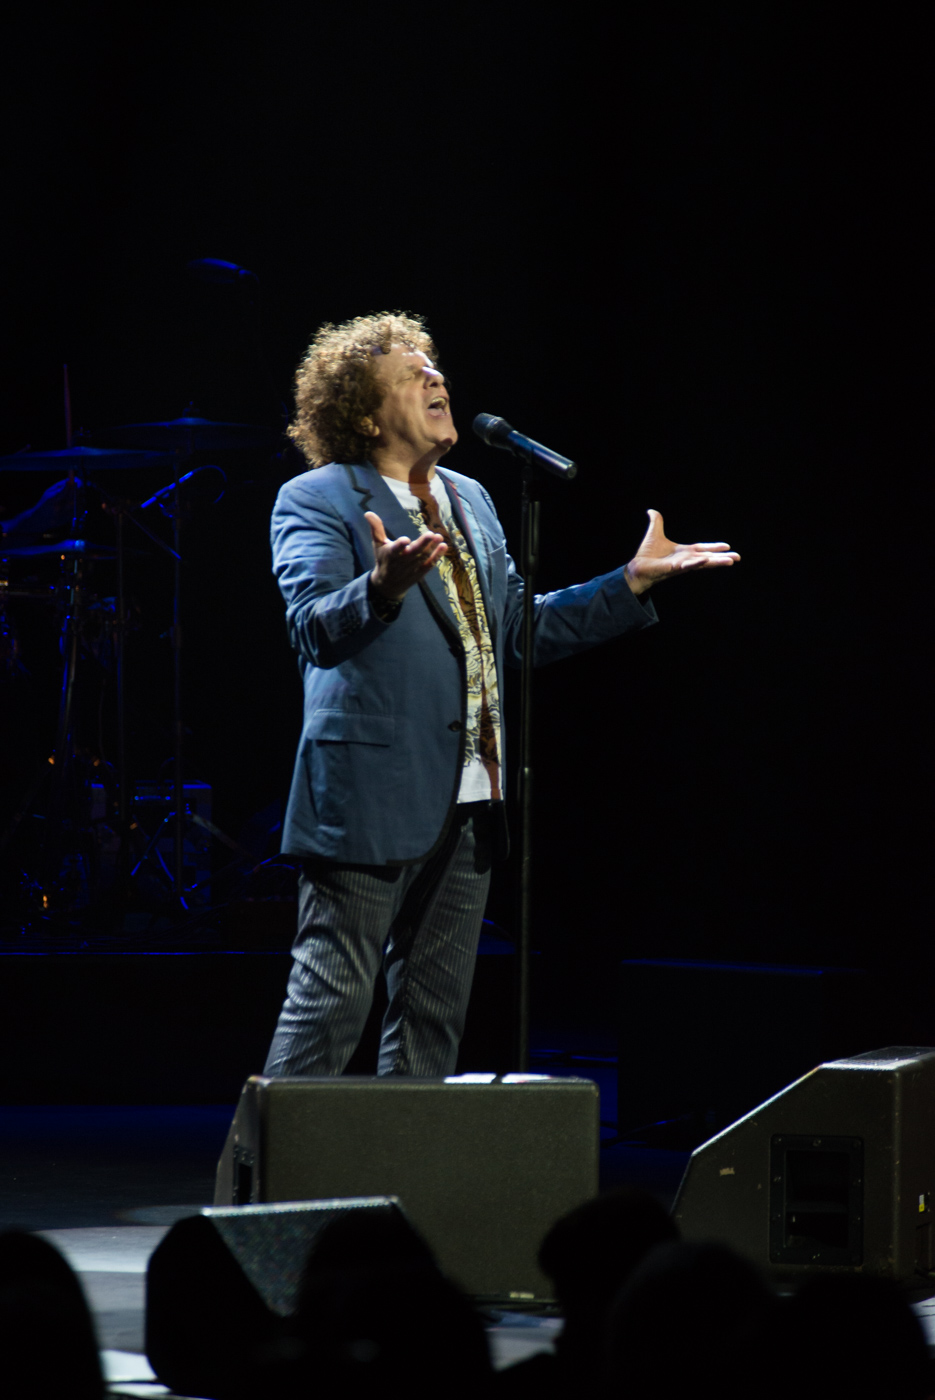 Leo Sayer at Bord Gais Energy Theatre by Sean Smyth (16-10-15) (56 of 129)